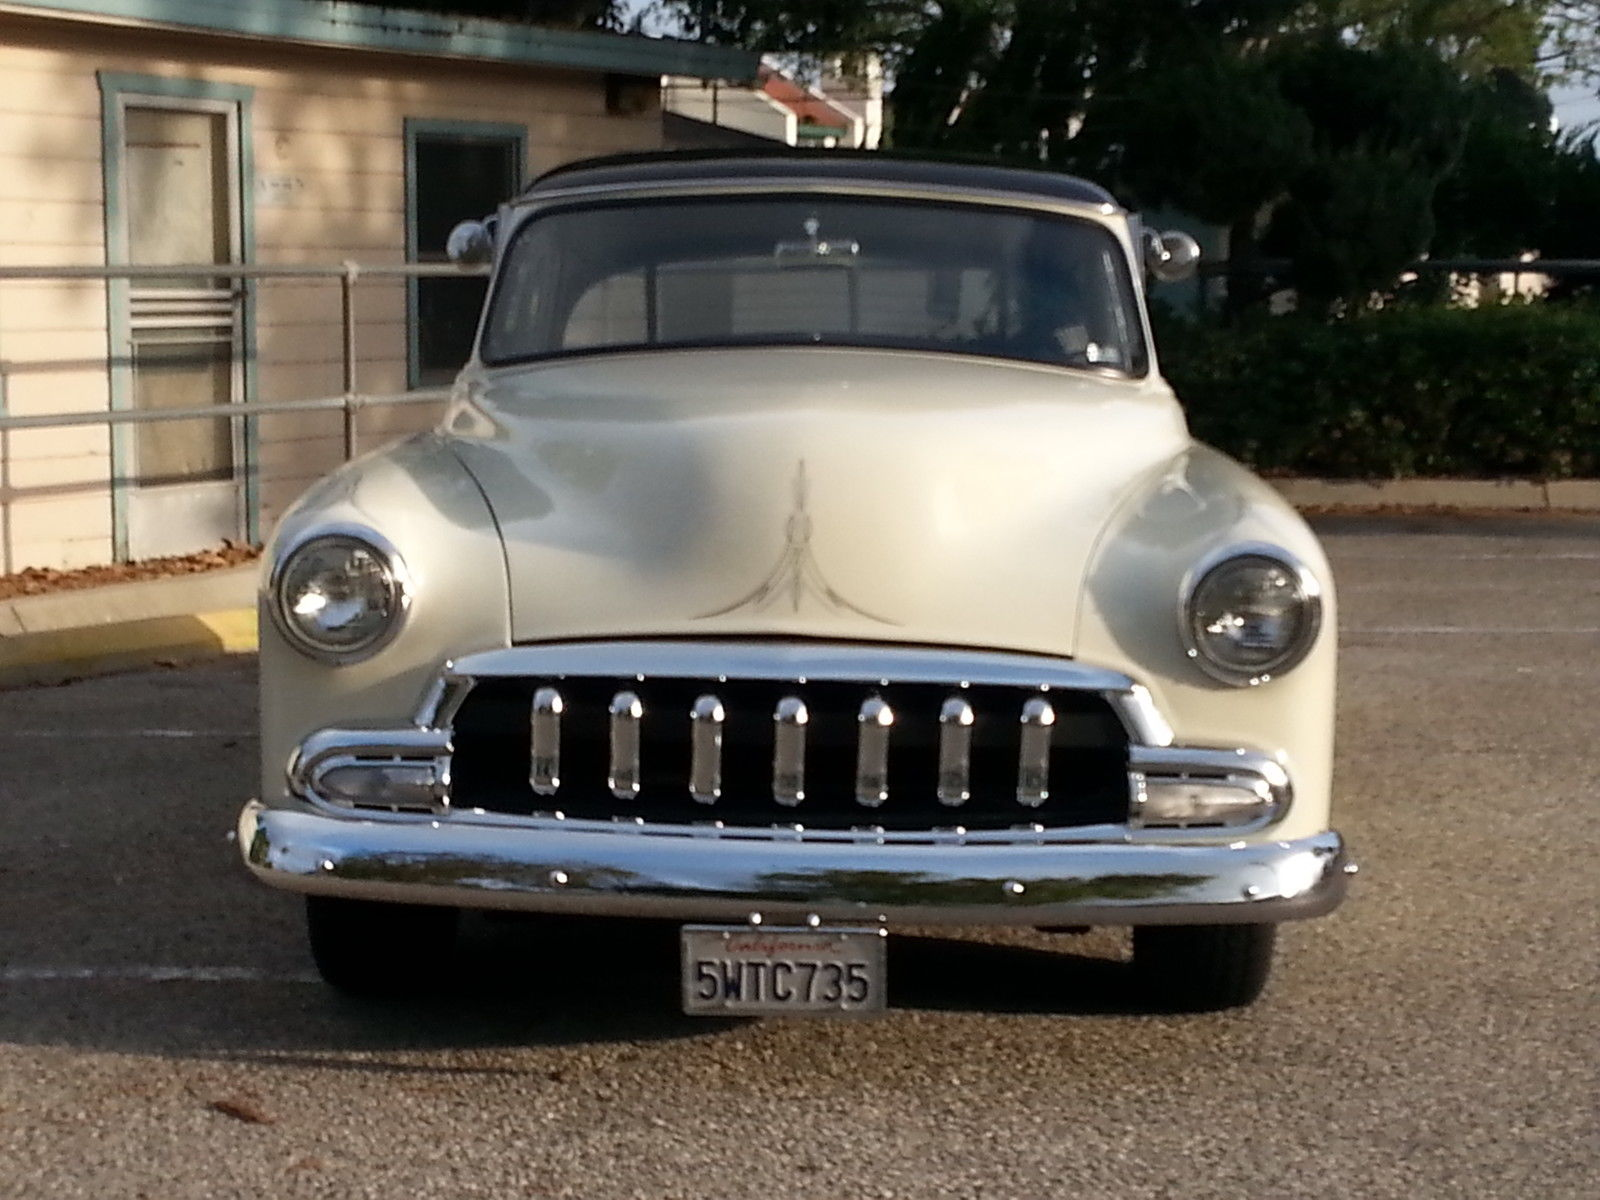 1952 Chevrolet Bel Air/150/210 hardtop